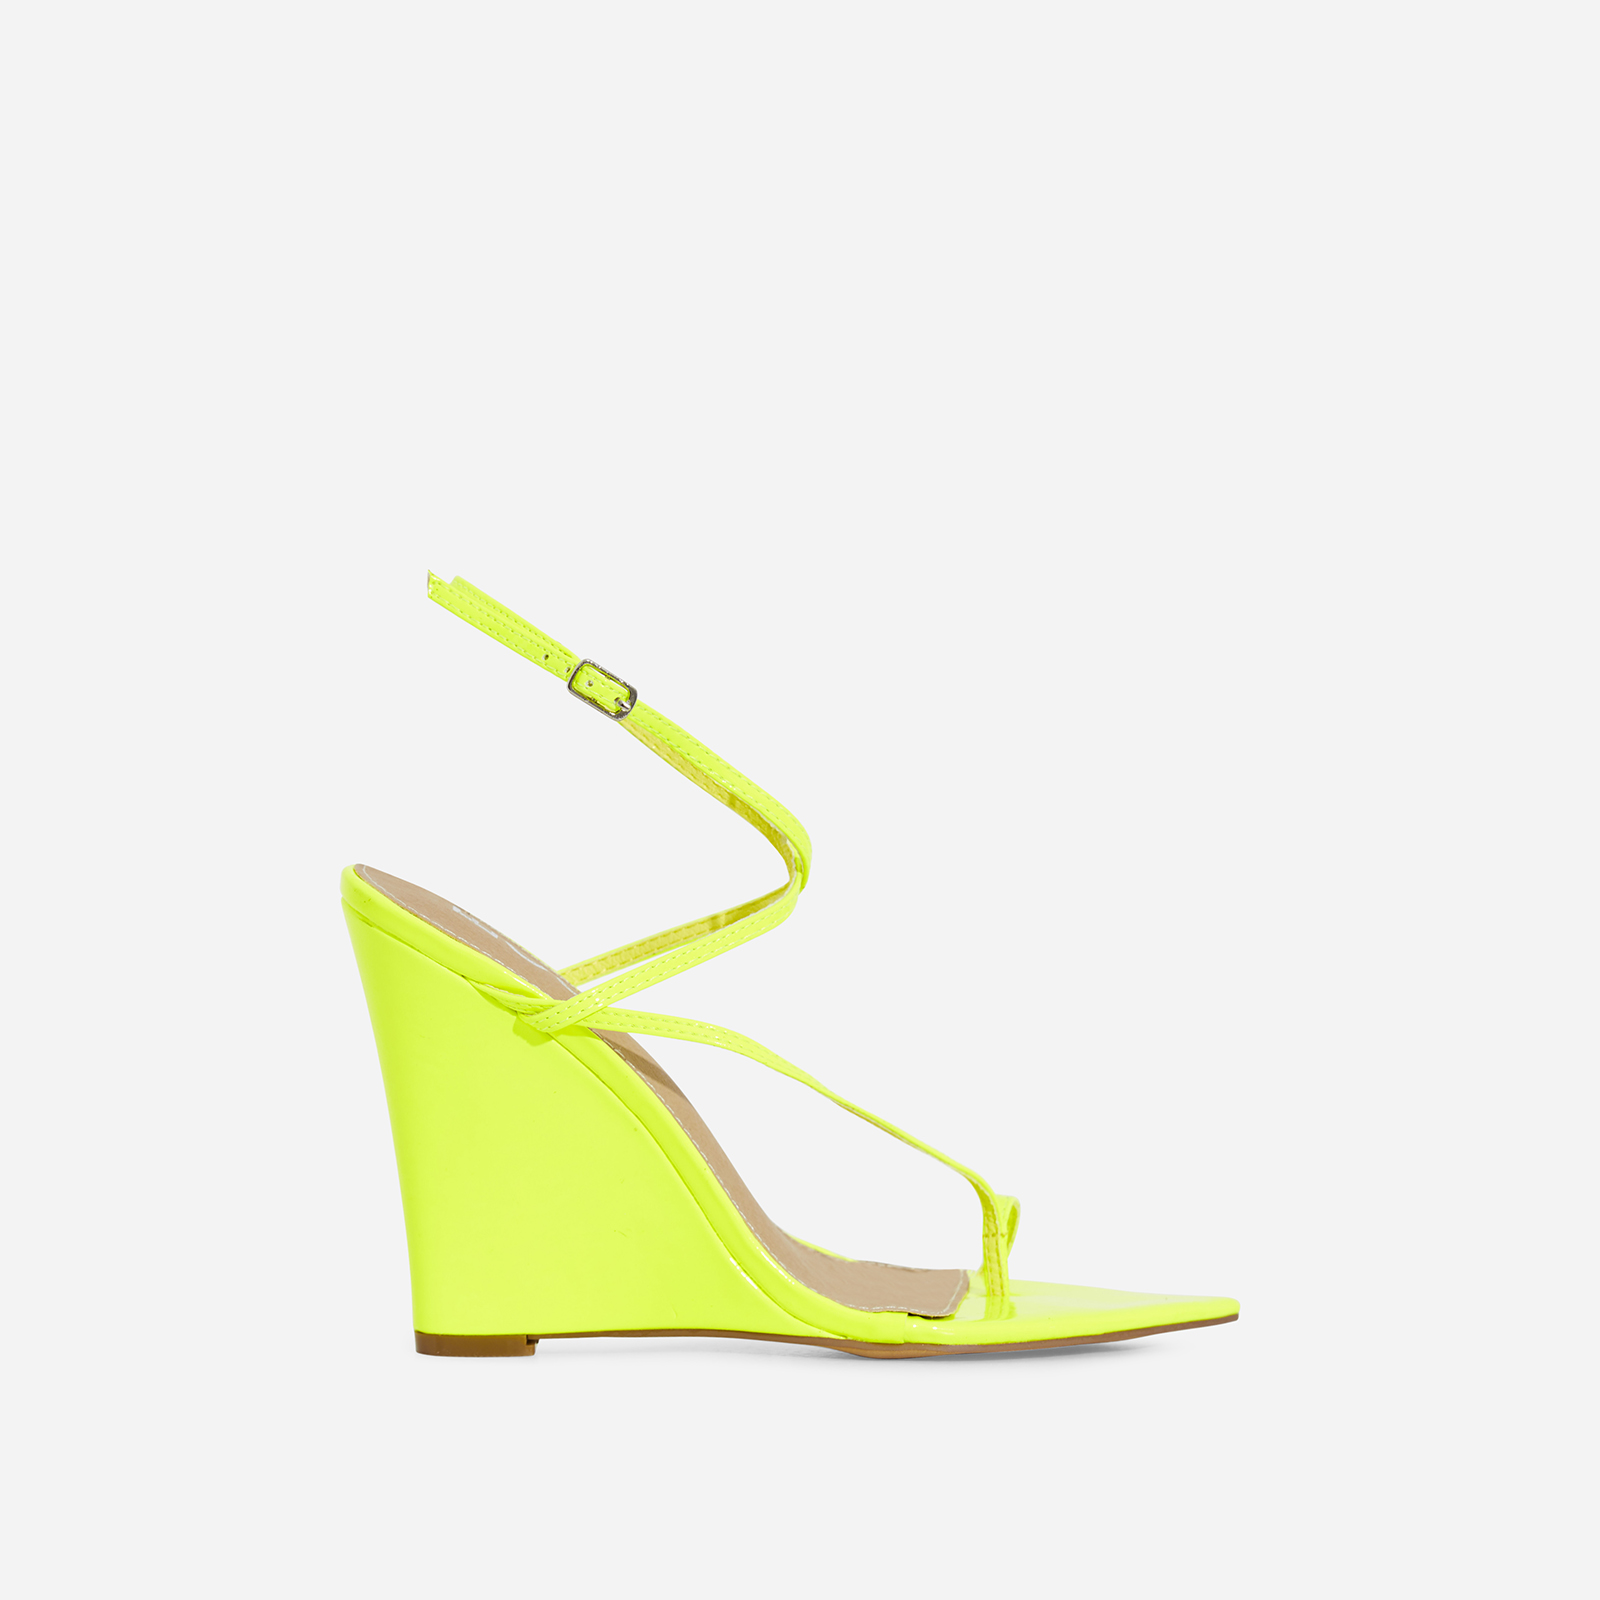 Melanie Toe Strap Wedge Heel In Lime Green Patent